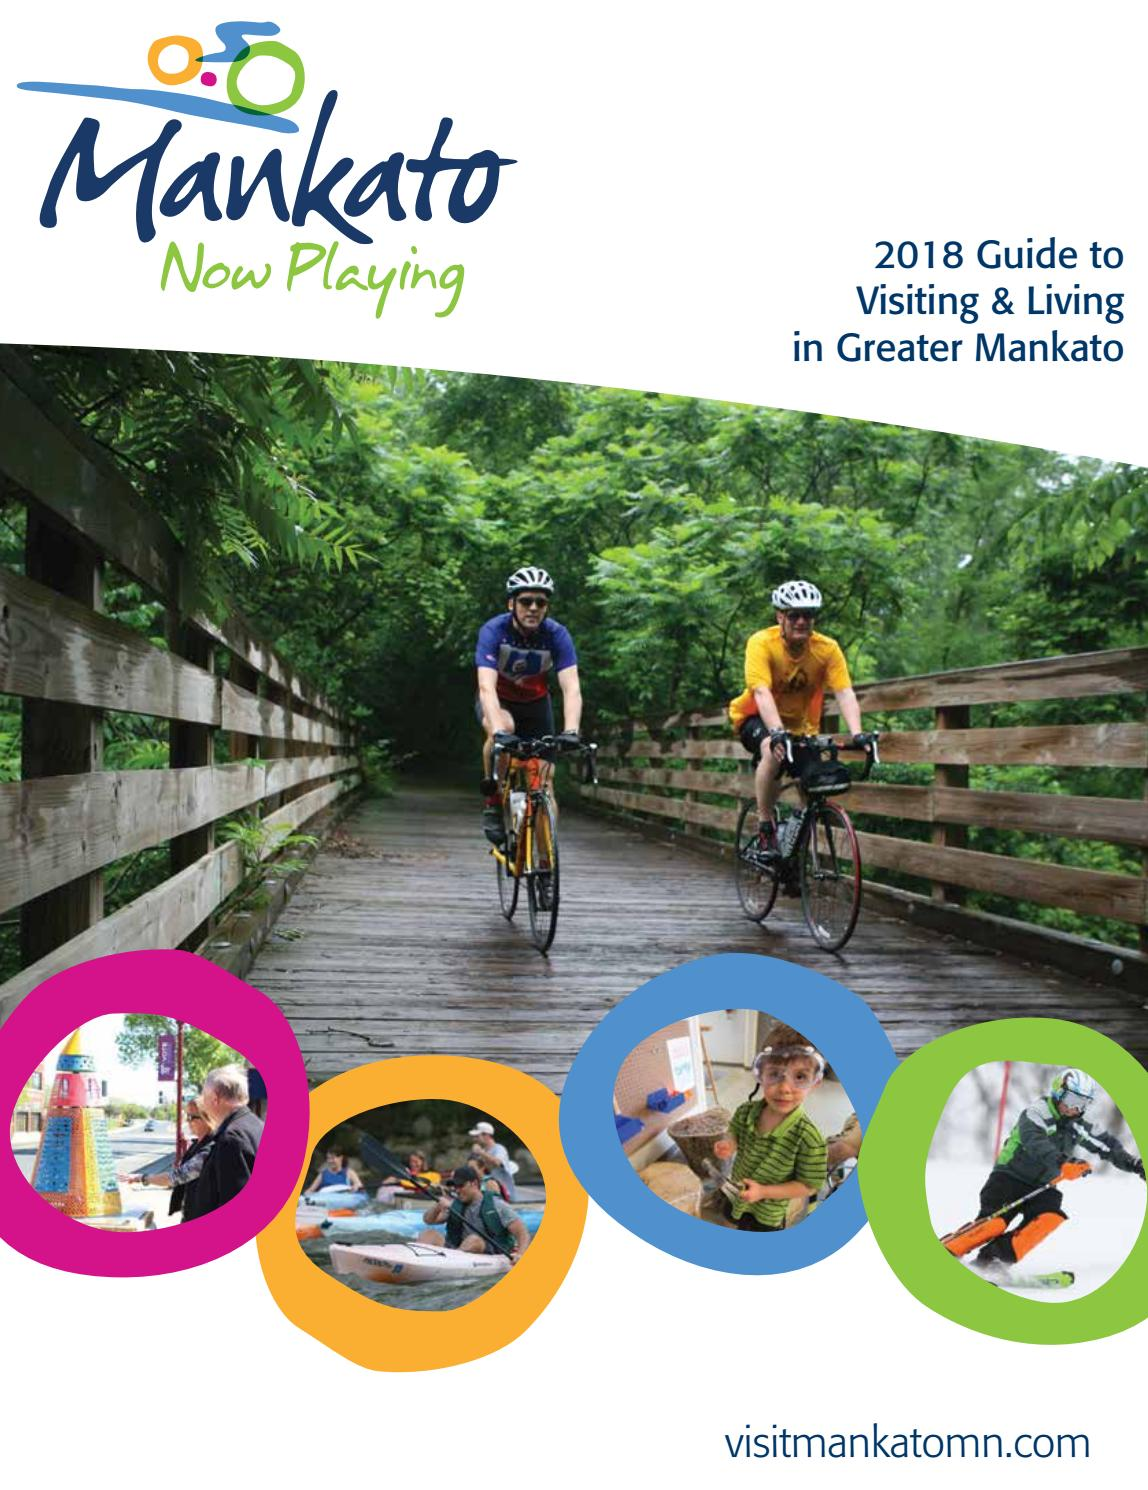 2018 Guide to Visiting & Living in Greater Mankato by